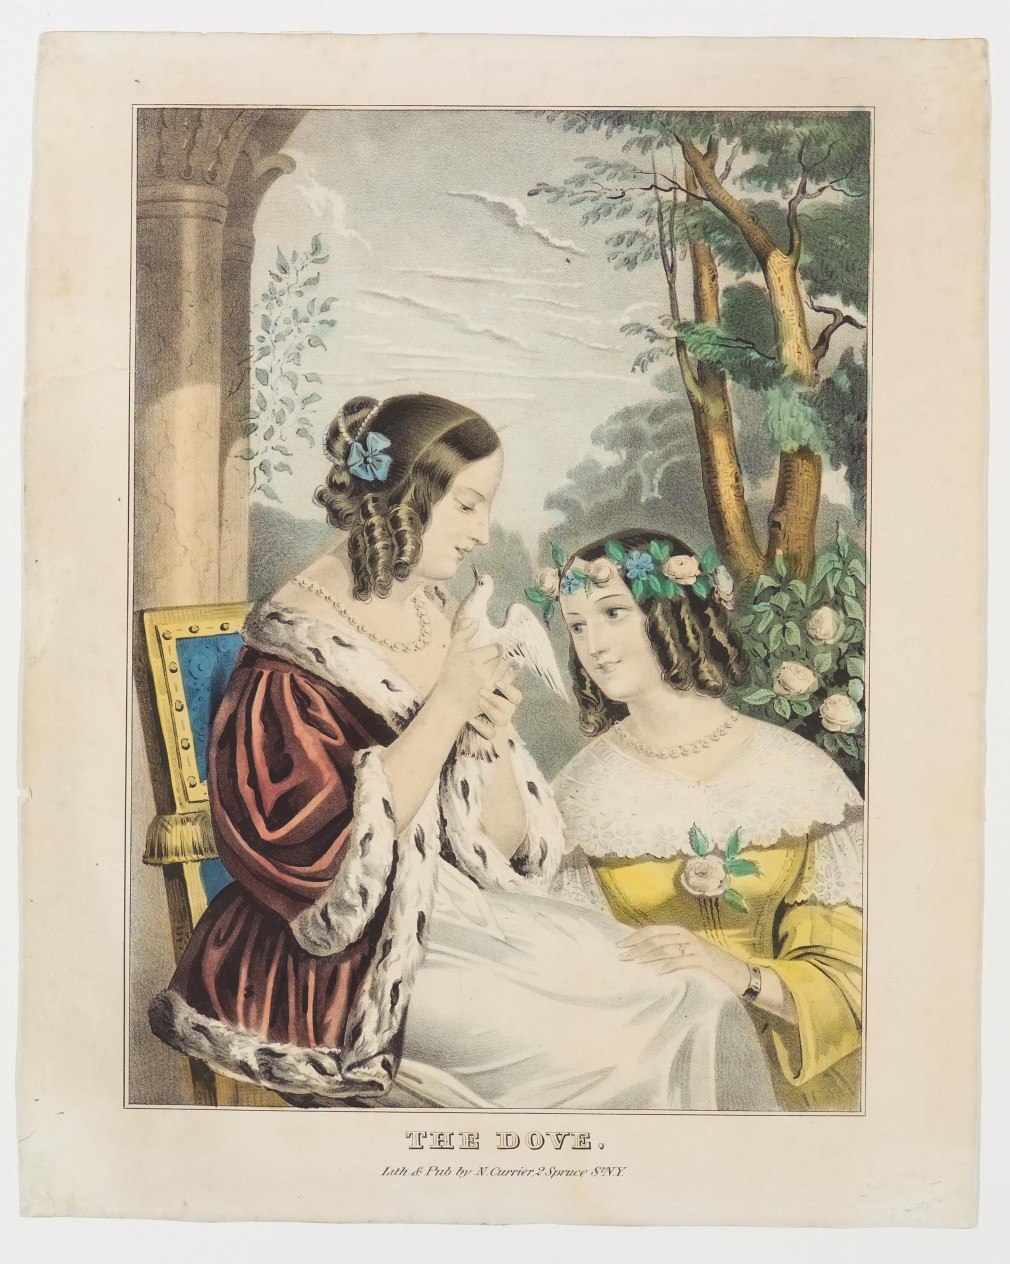 Two women - one on left seated holding and looking down at dove; one on right in yellow dress and kneeling and looking up at dove